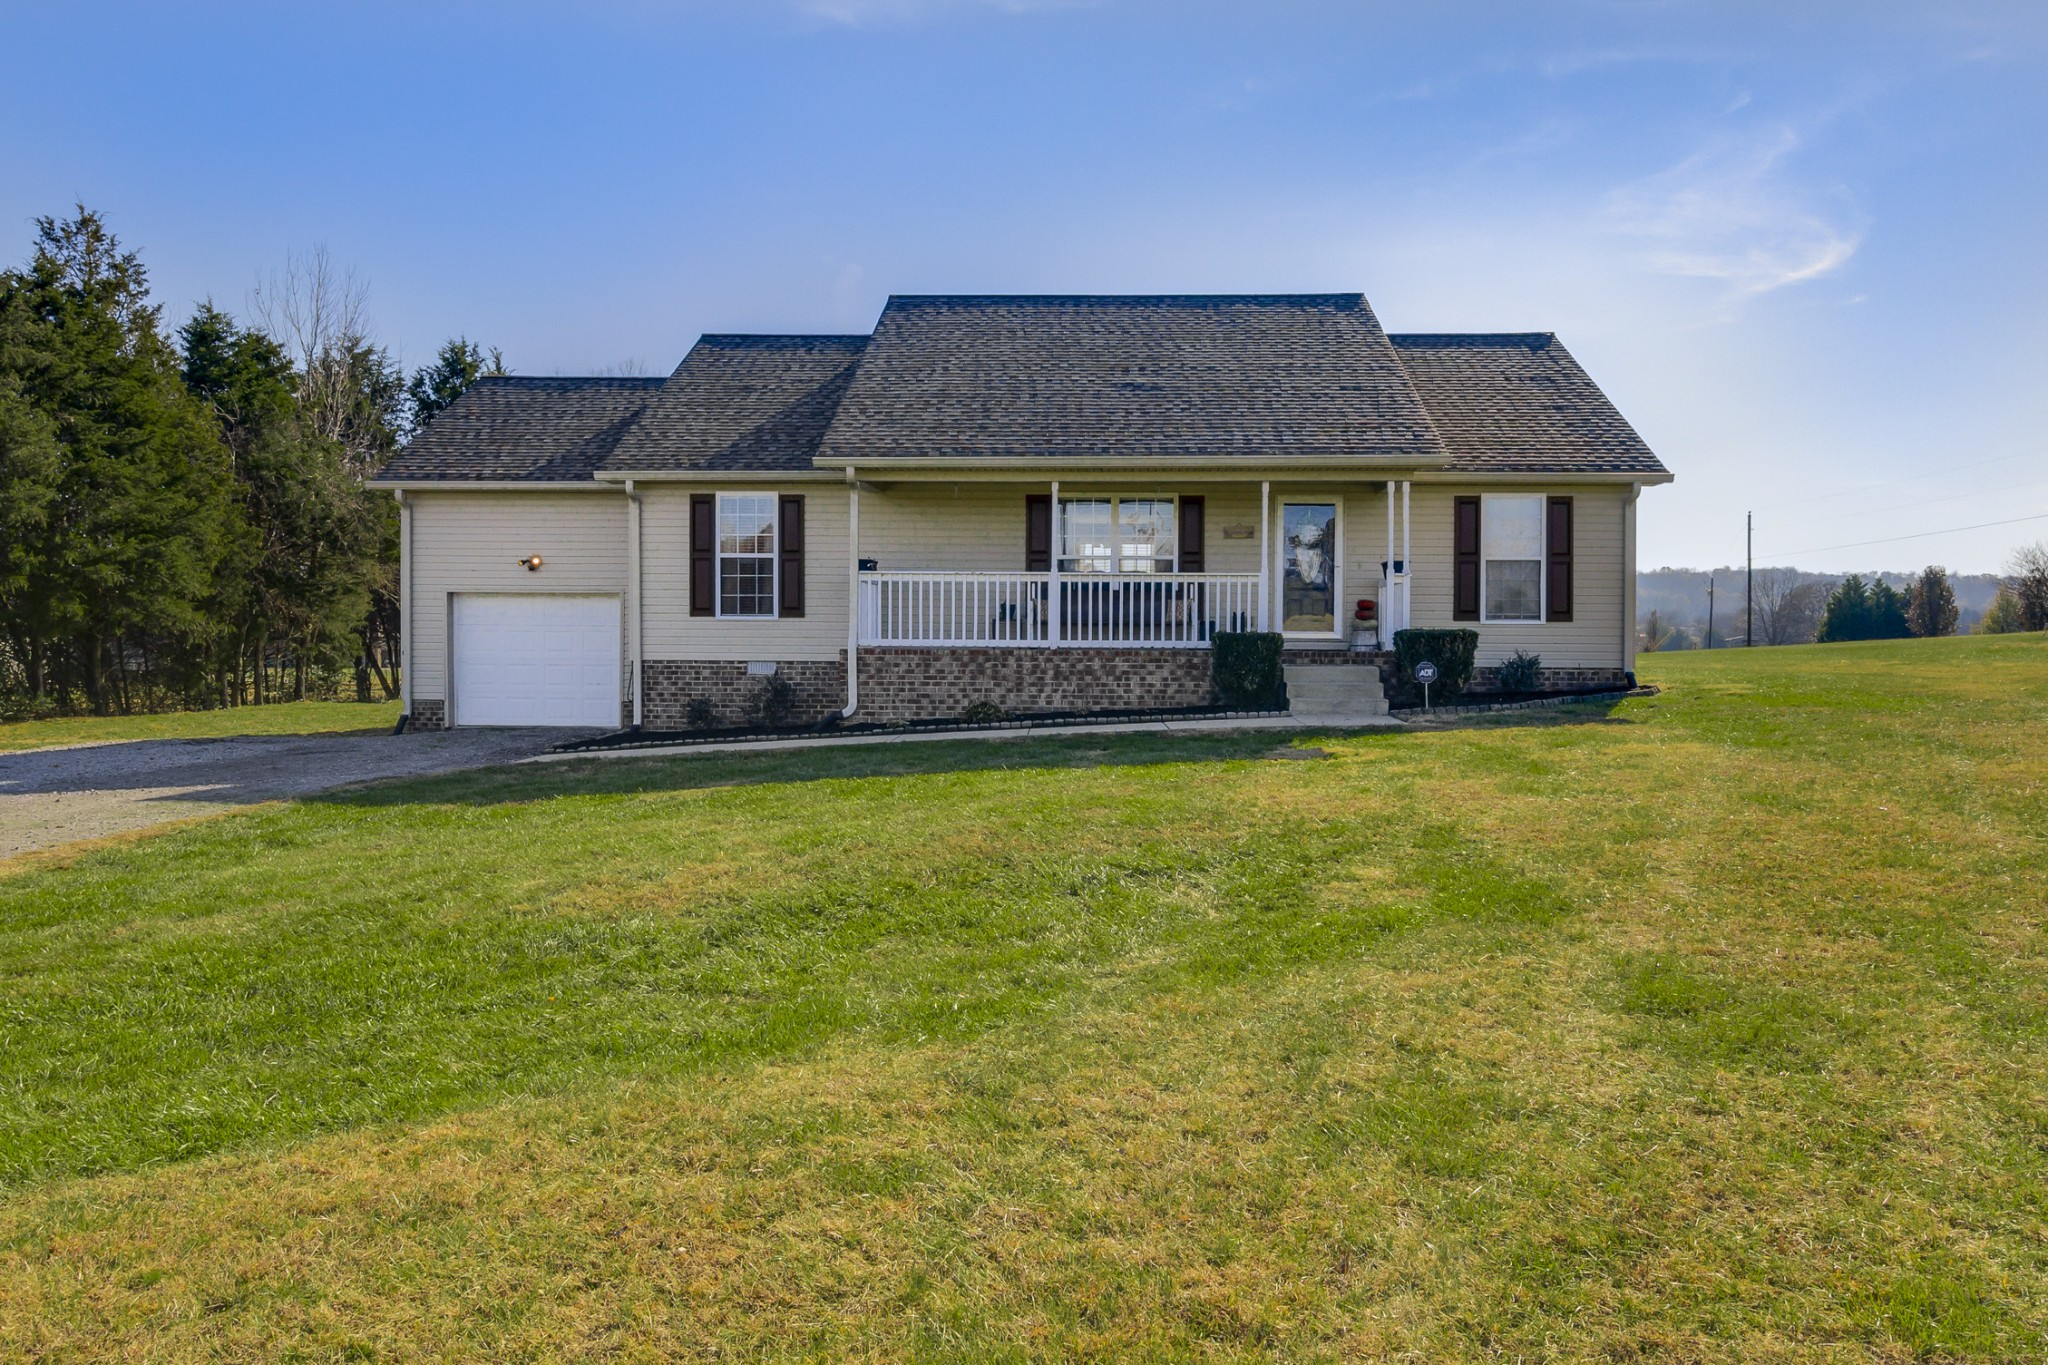 554 Roberts Rd, Watertown, TN 37184 - Watertown, TN real estate listing